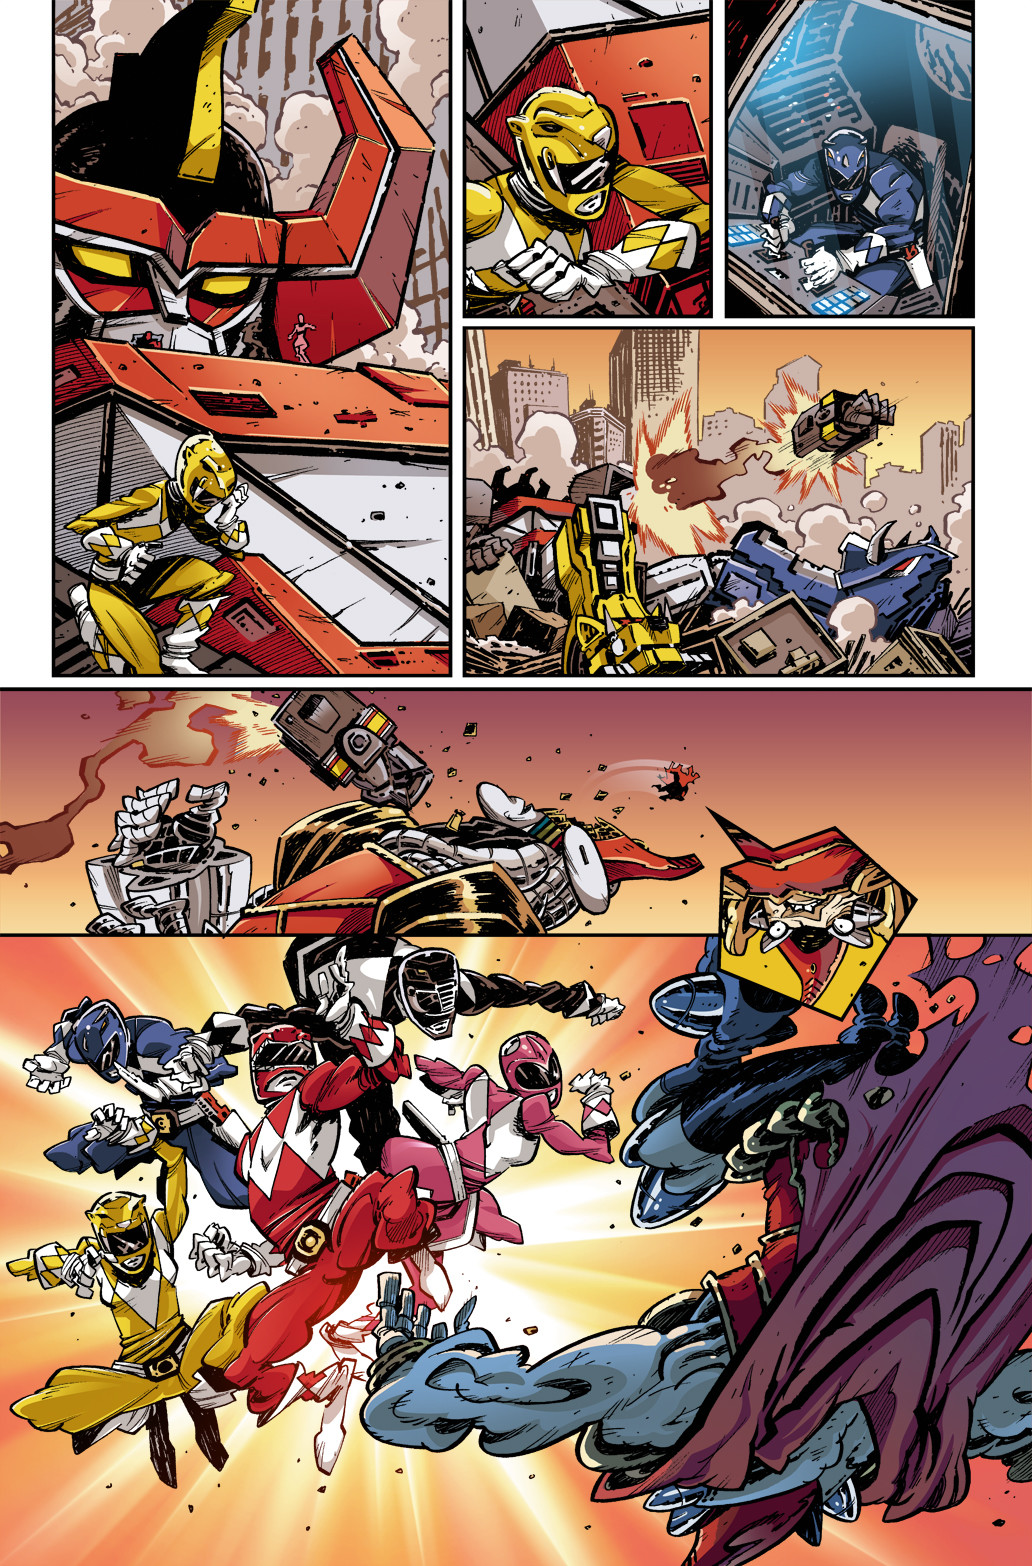 Mighty Morphin Power Rangers Annual, page 4